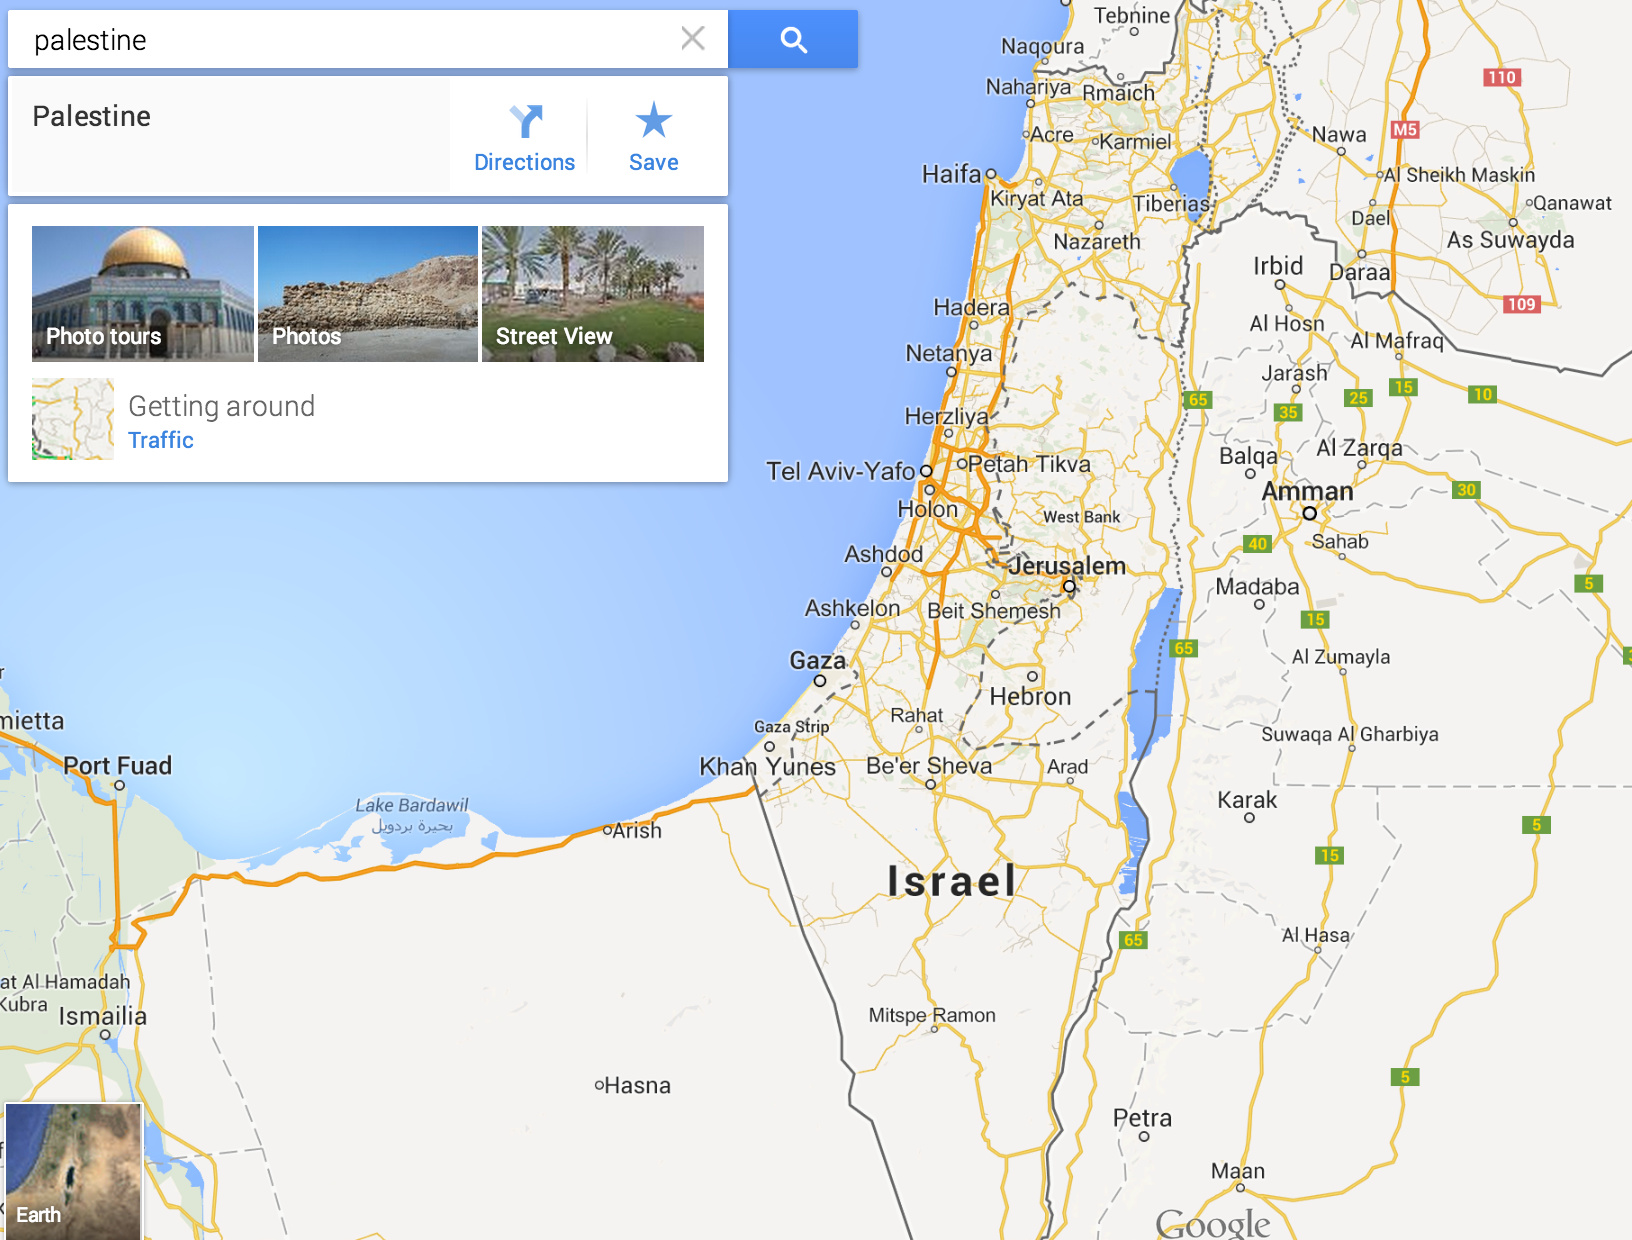 Palestine Does Not Receive Label On Maps